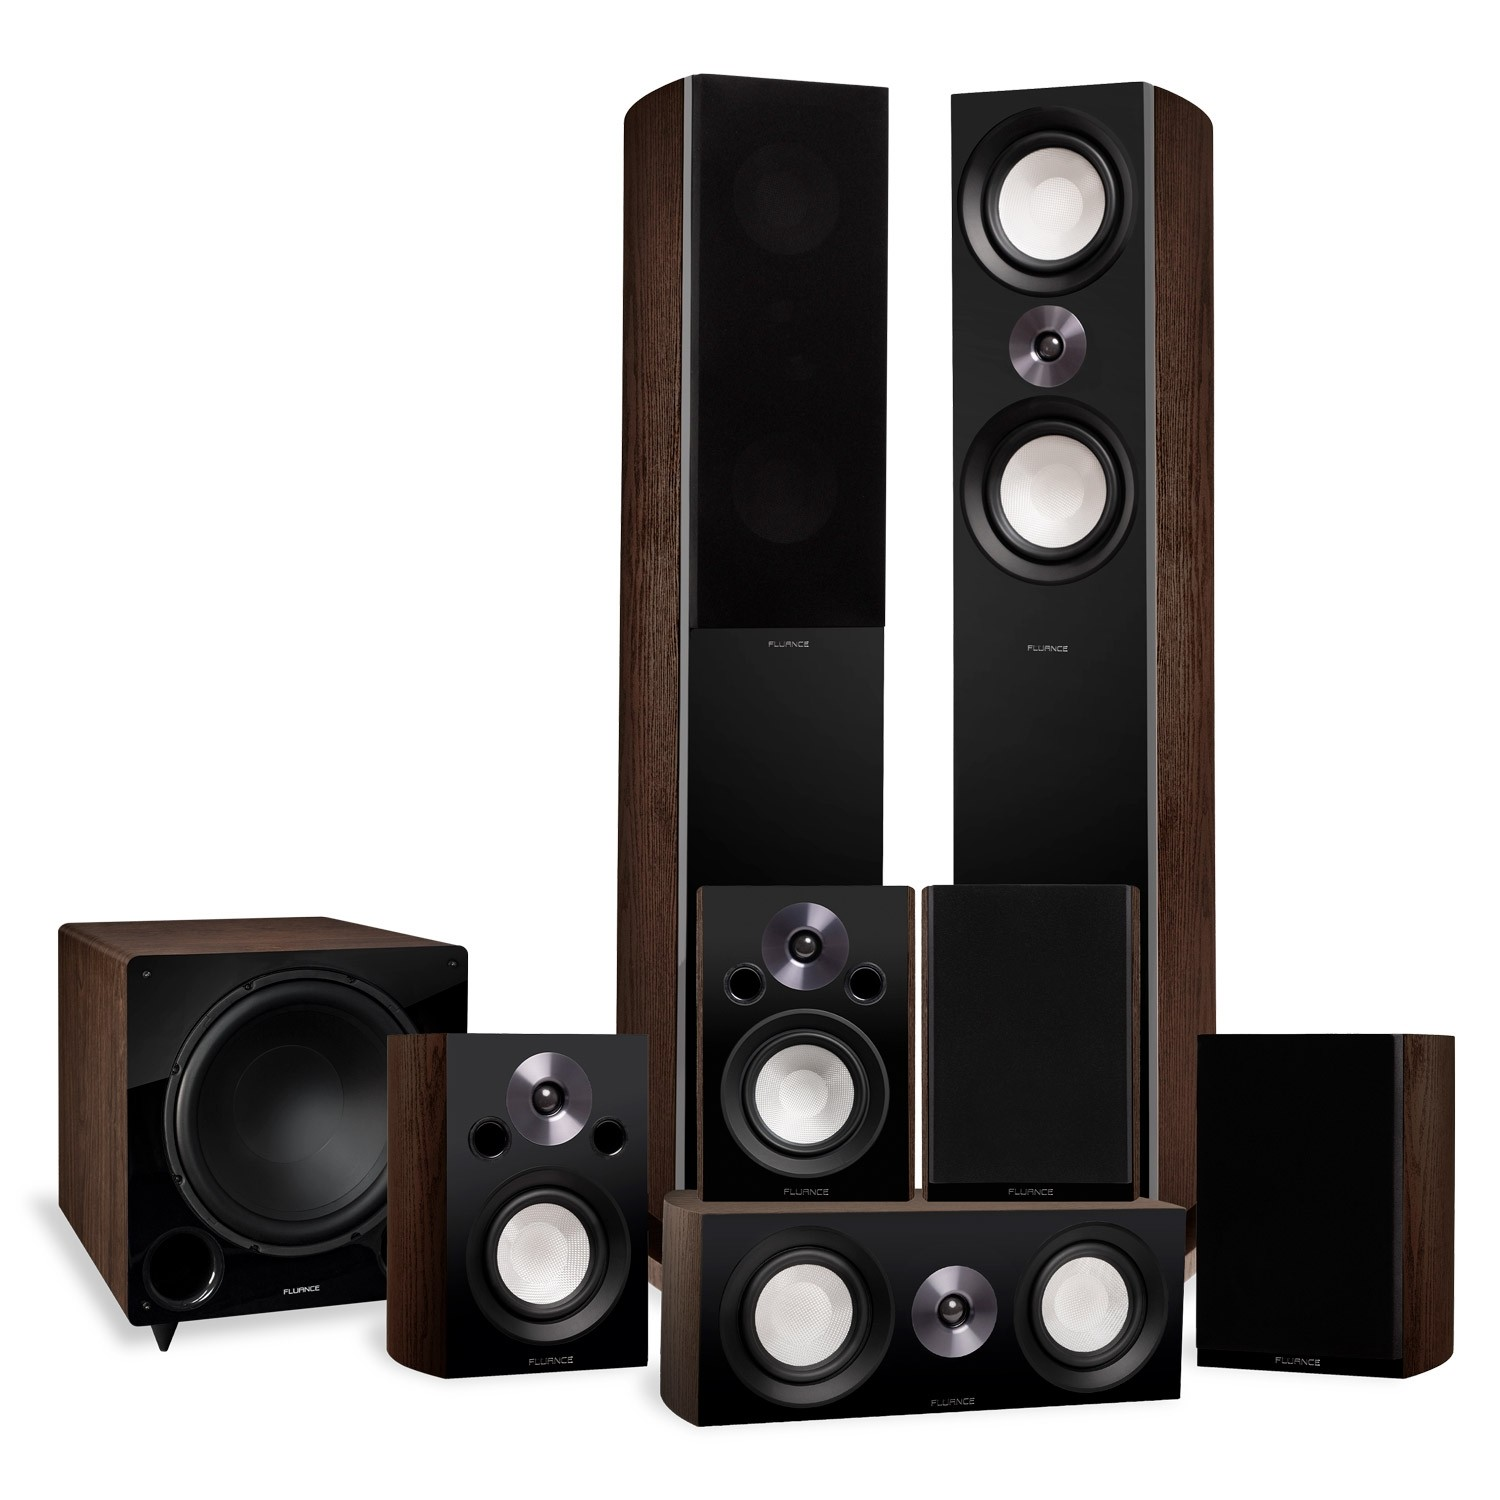 Reference Series Surround Sound Home Theater 7.1 Channel Speaker System with DB12 Subwoofer